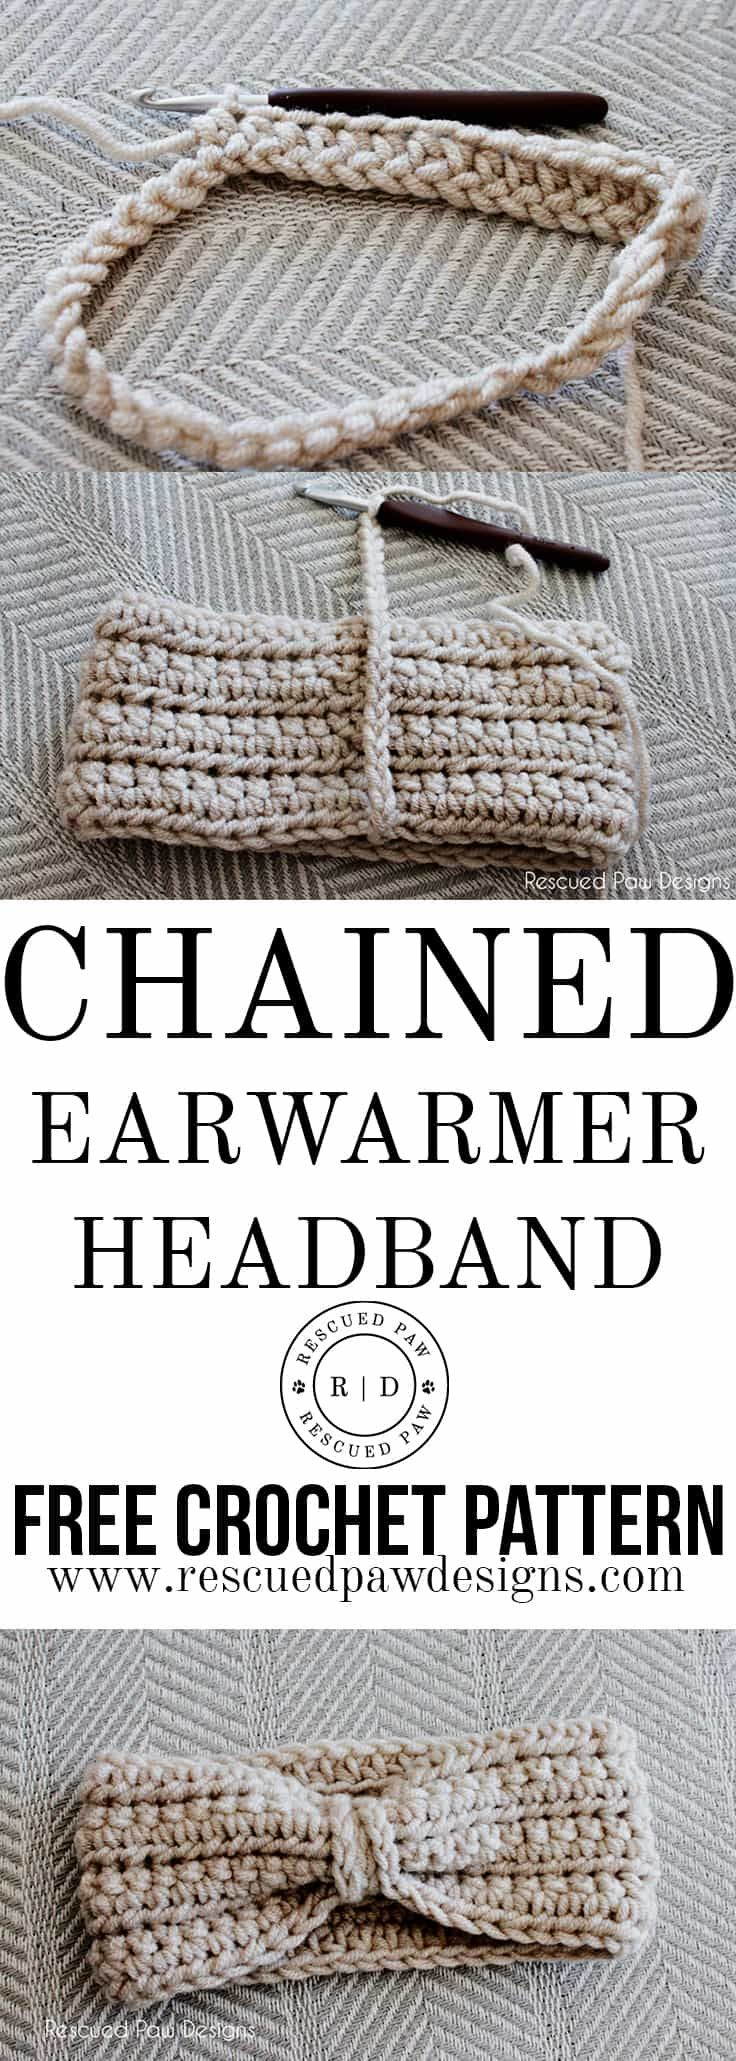 Crochet Chained Ear Warmer Pattern by Rescued Paw Designs | Tejido ...